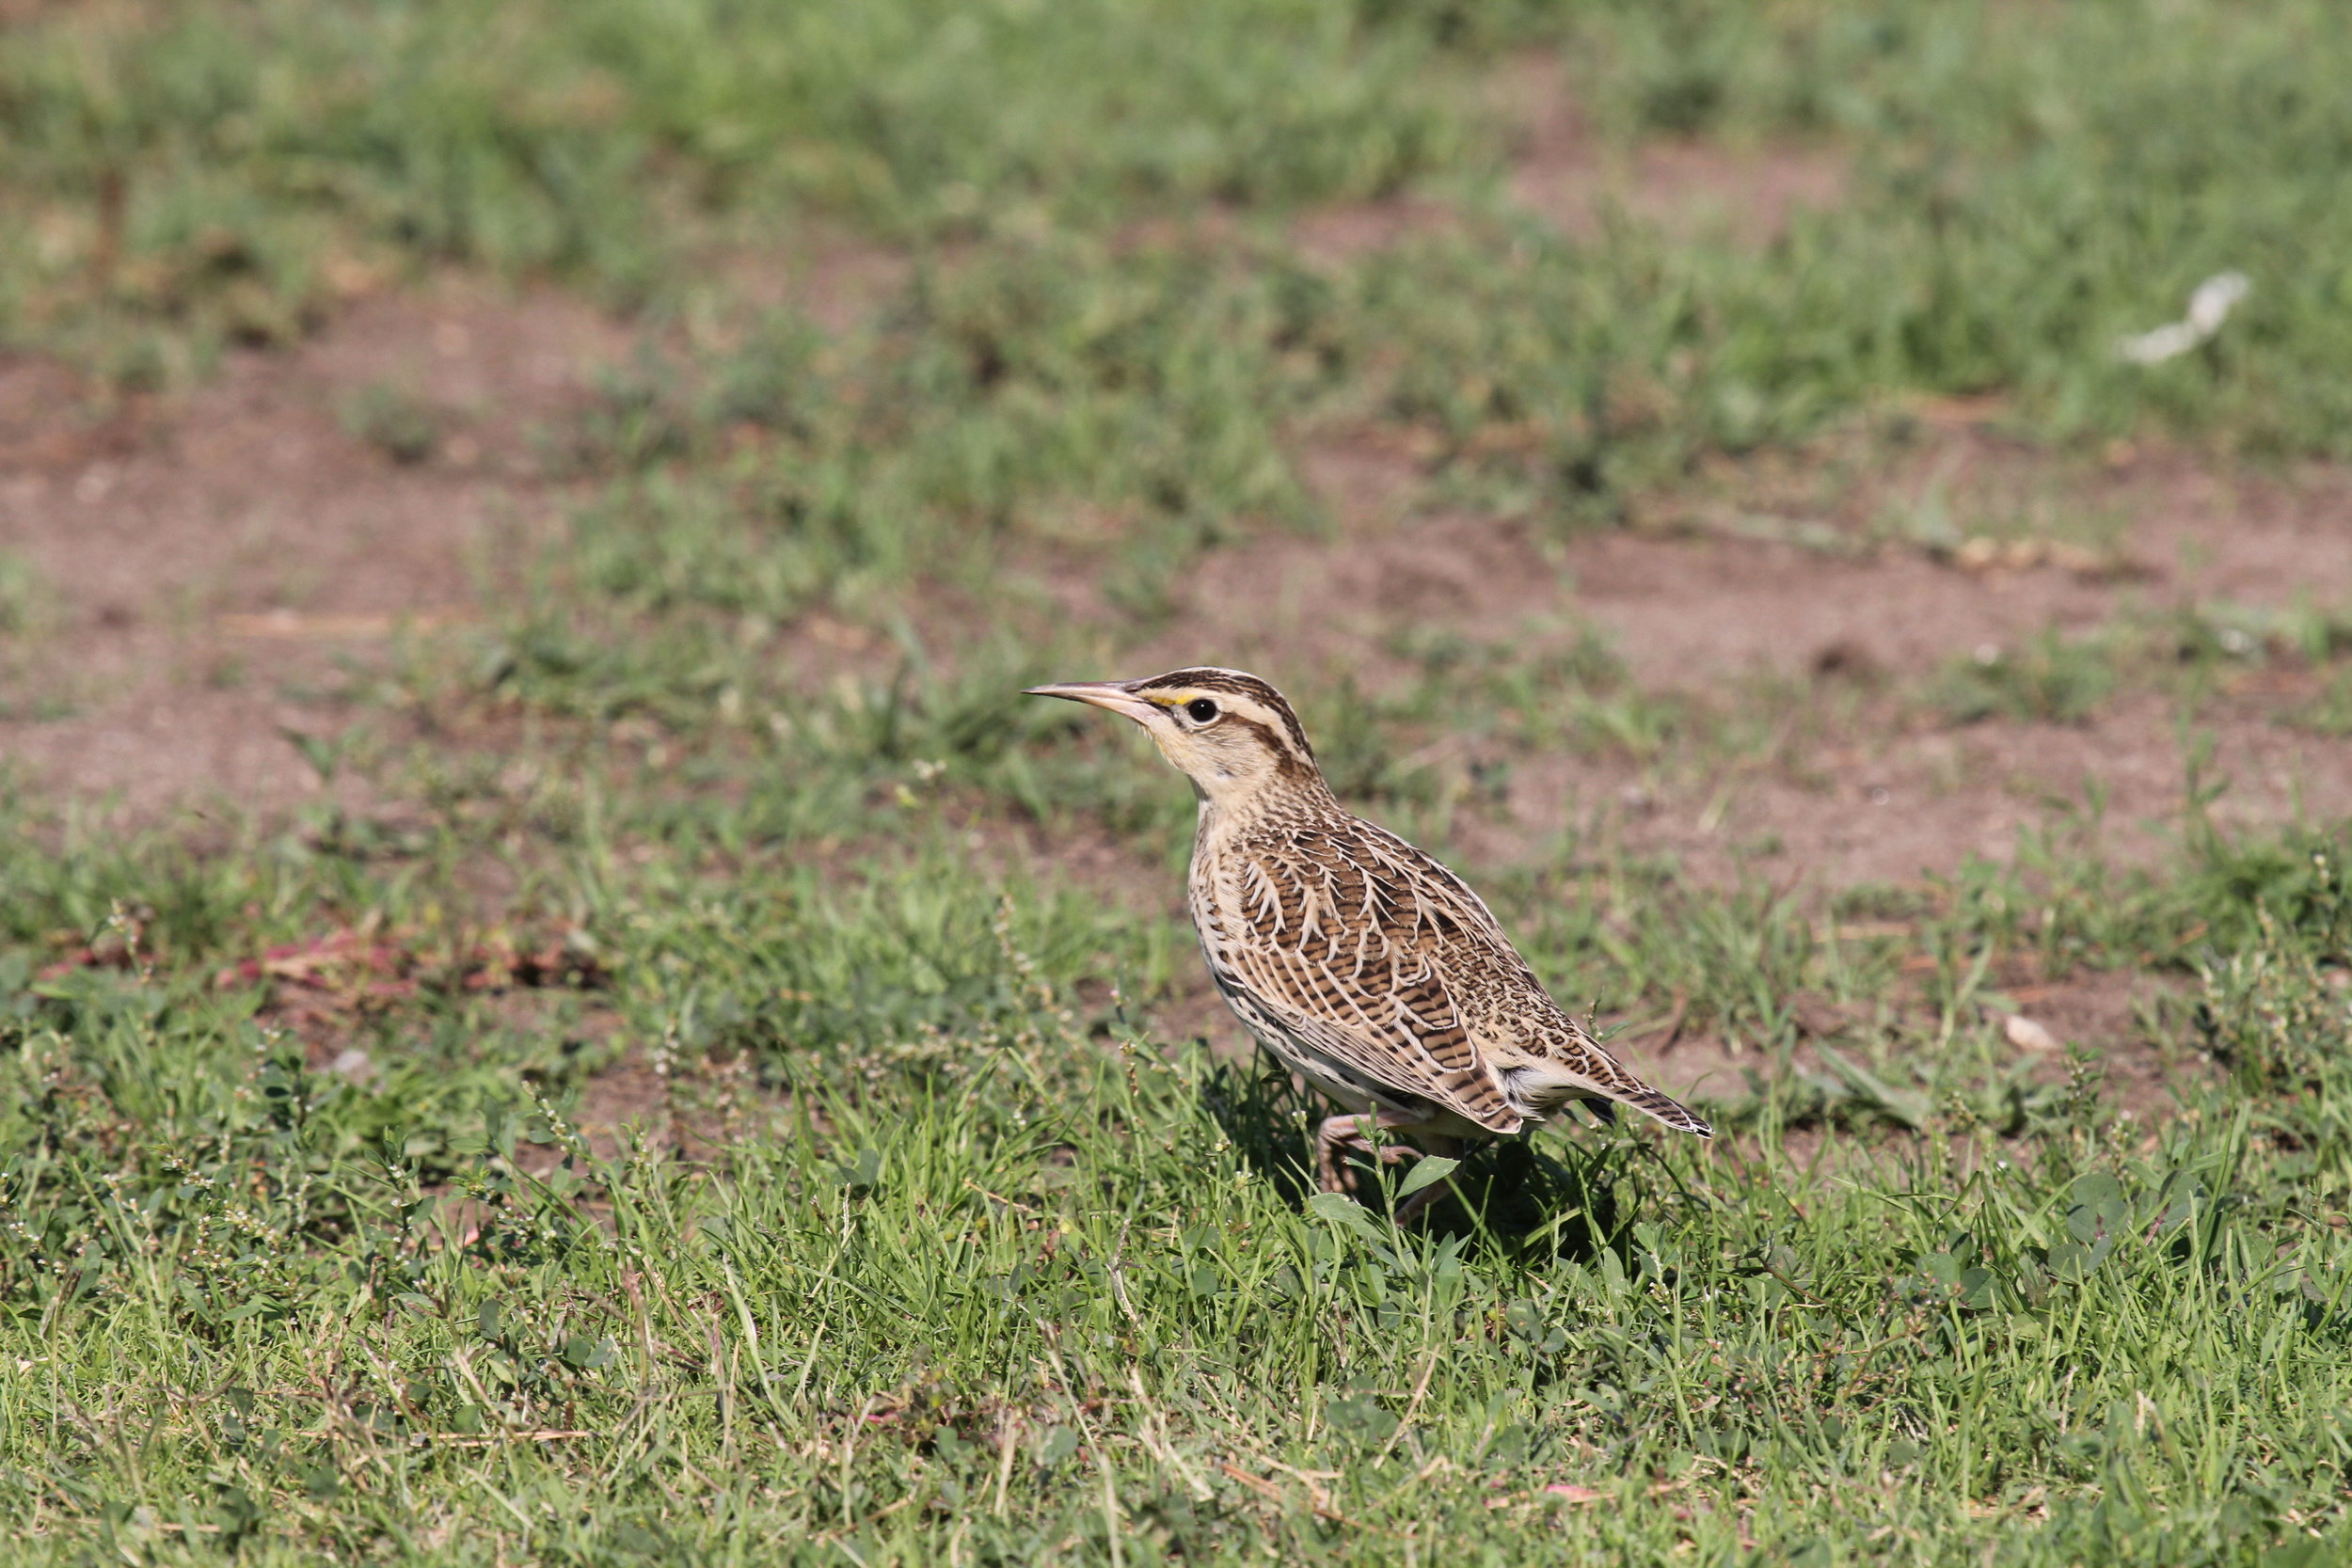 A wintering Western Meadowlark (Sturnella neglecta) in an urban park in LA. Parks are designed as places for recreation and community gatherings. Parks also serve a vital role in providing habitat for wildlife in the urban core. The 'parks project' (led by graduate student, Amy Vasquez) is working to understand what features of parks attract wildlife - and in turn, how parks can be designed to benefit both biodiversity and people.